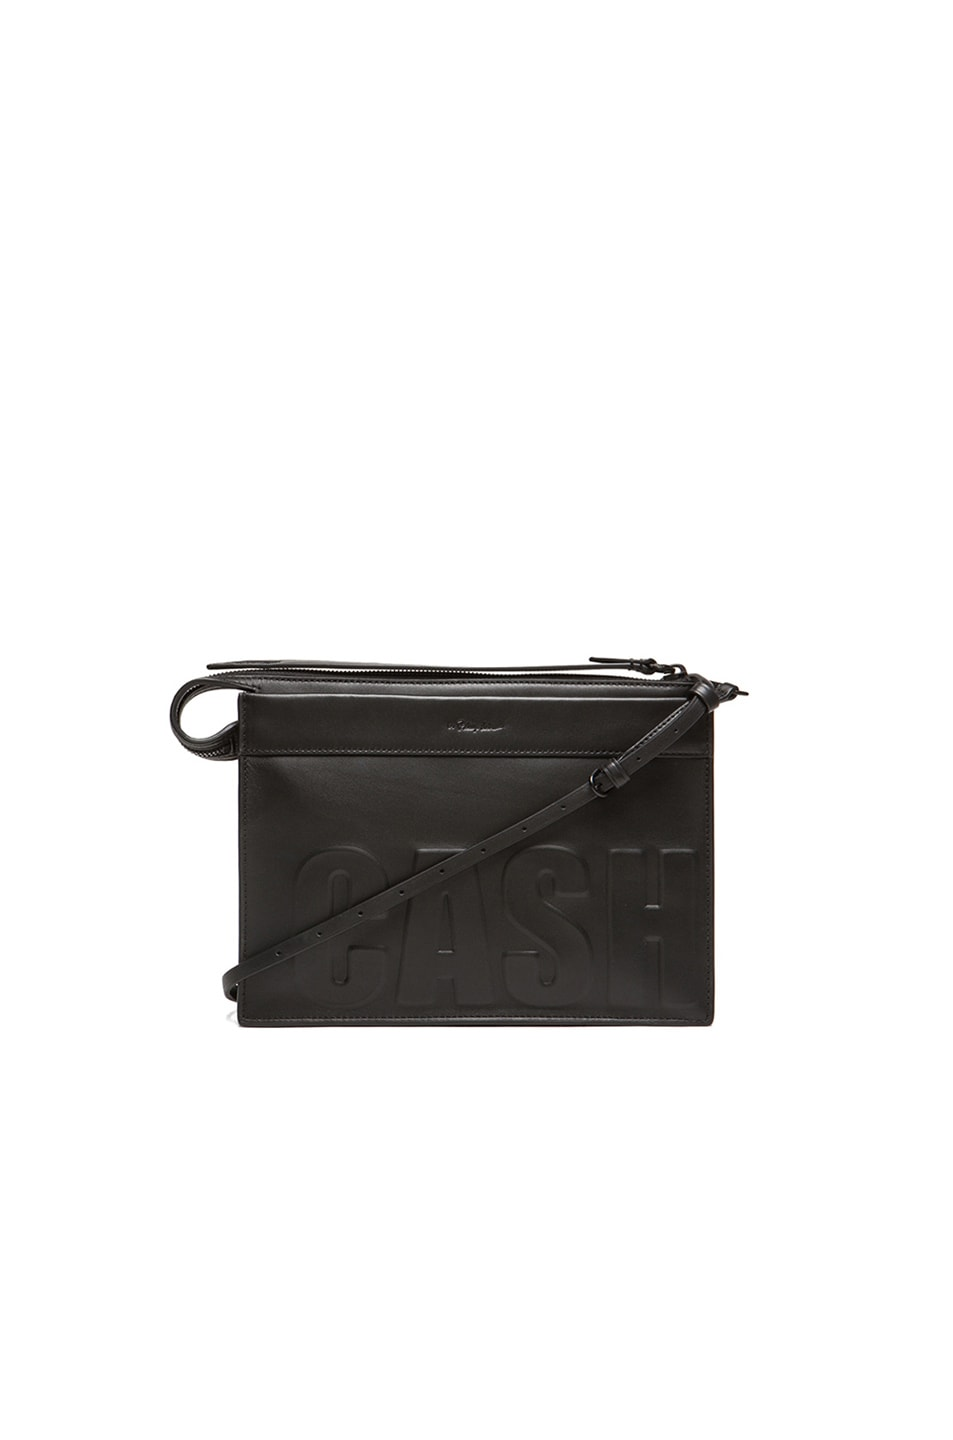 Image 1 of 3.1 phillip lim Cash Only Clutch in Black